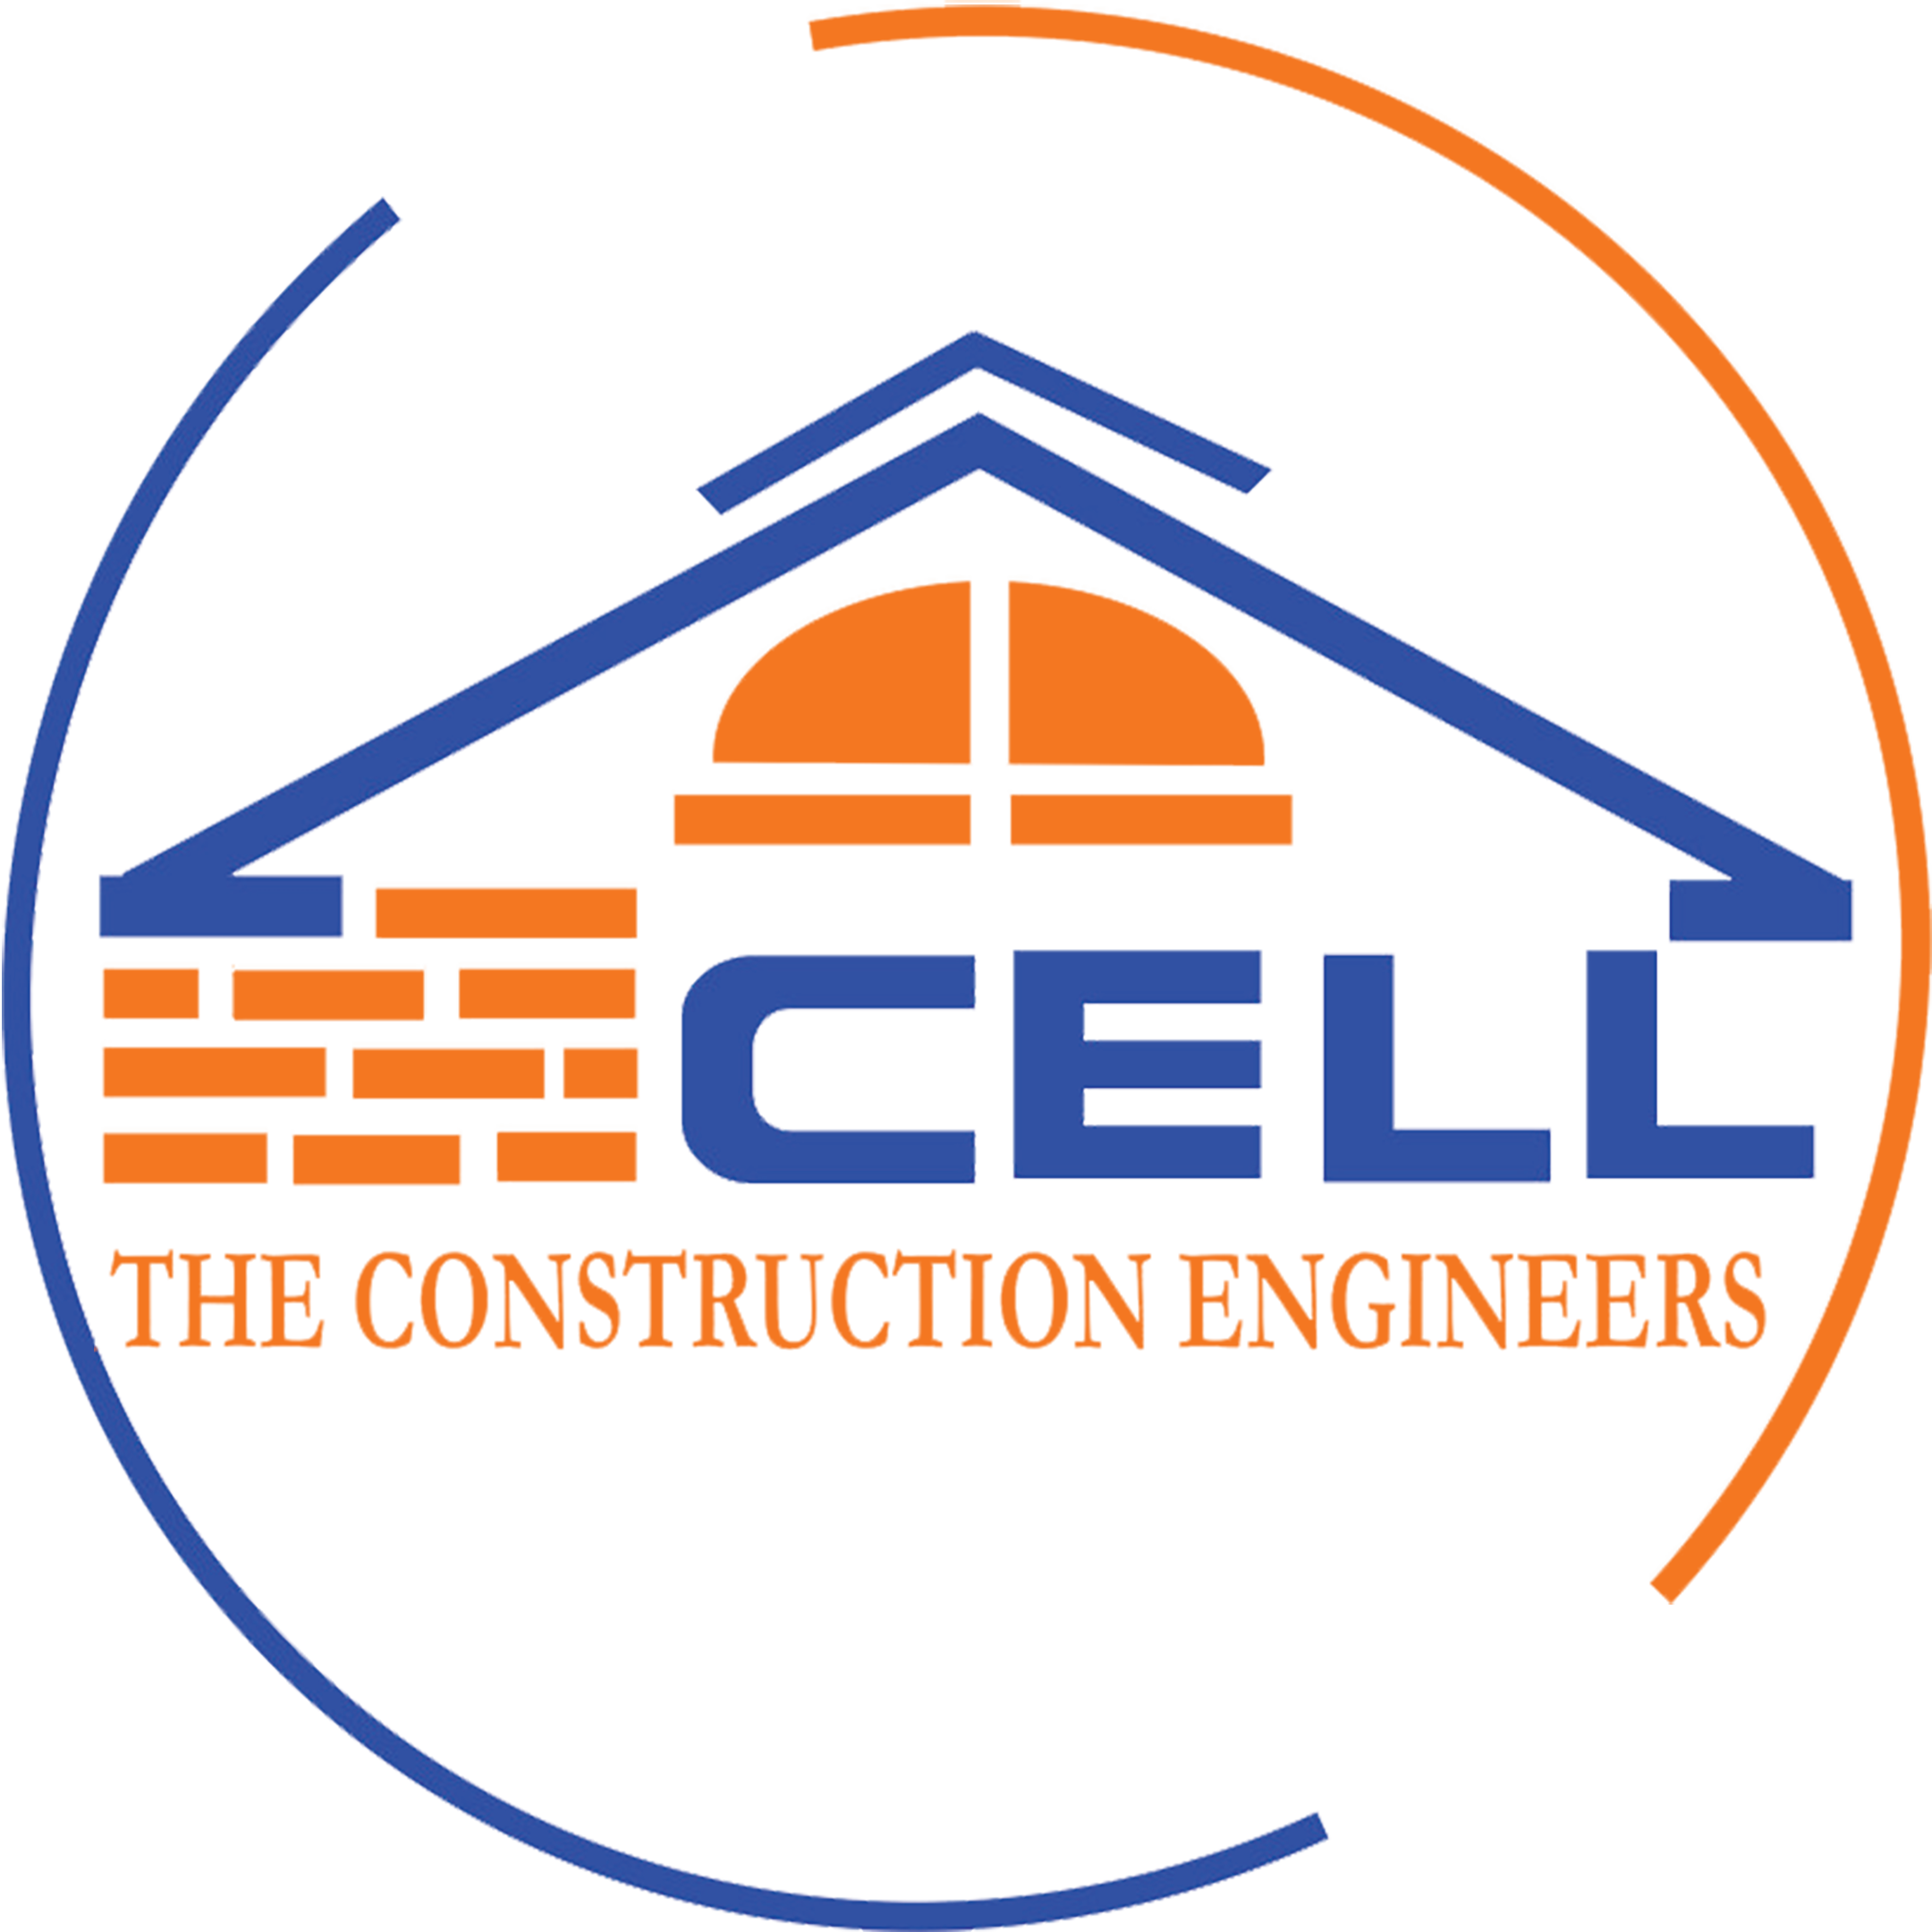 Cellconstruction Limited